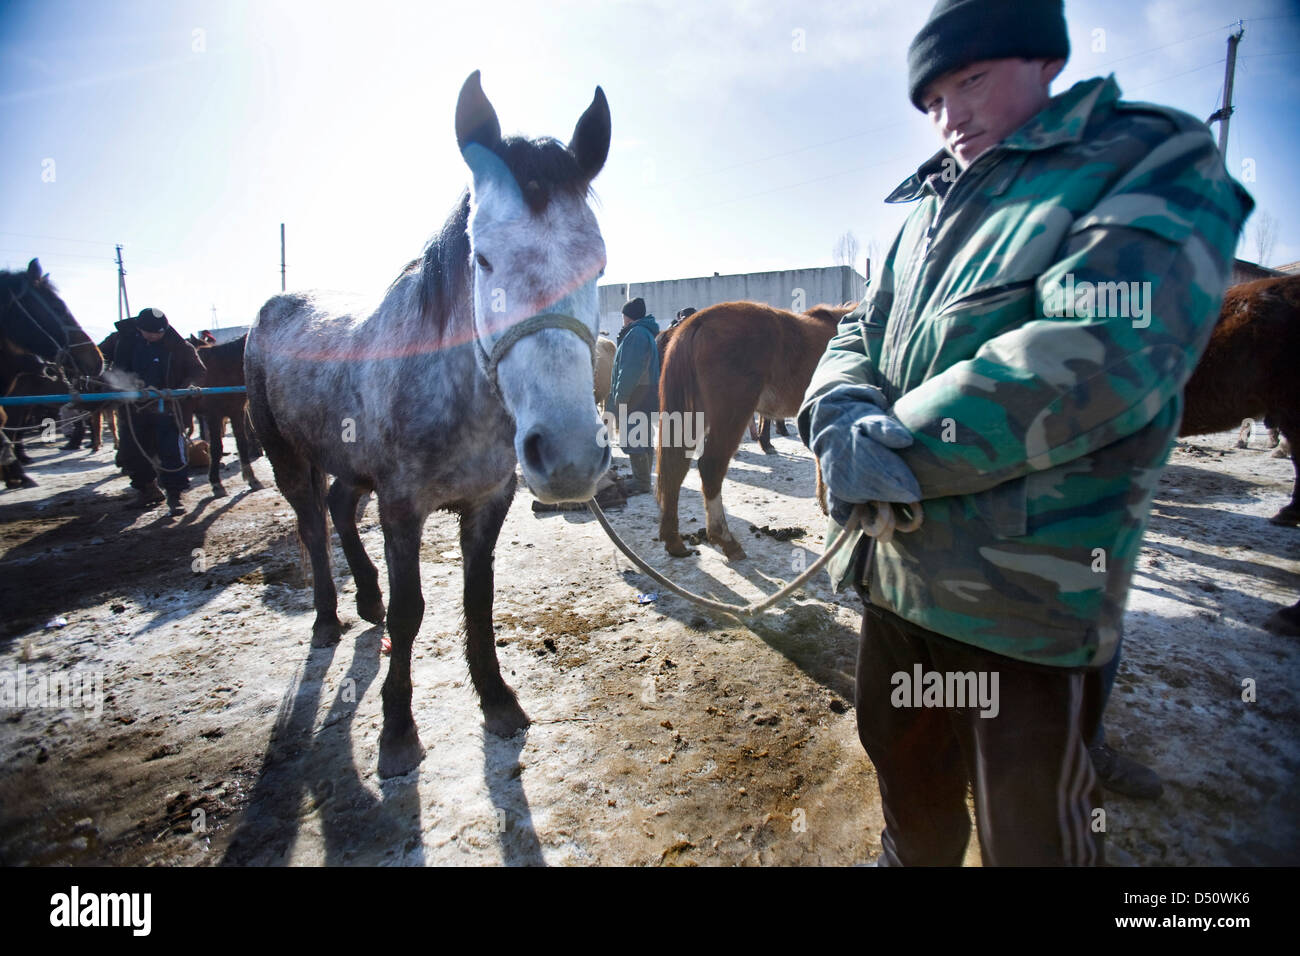 A Seller Poses With His White Horse On Sale Stock Photo Alamy